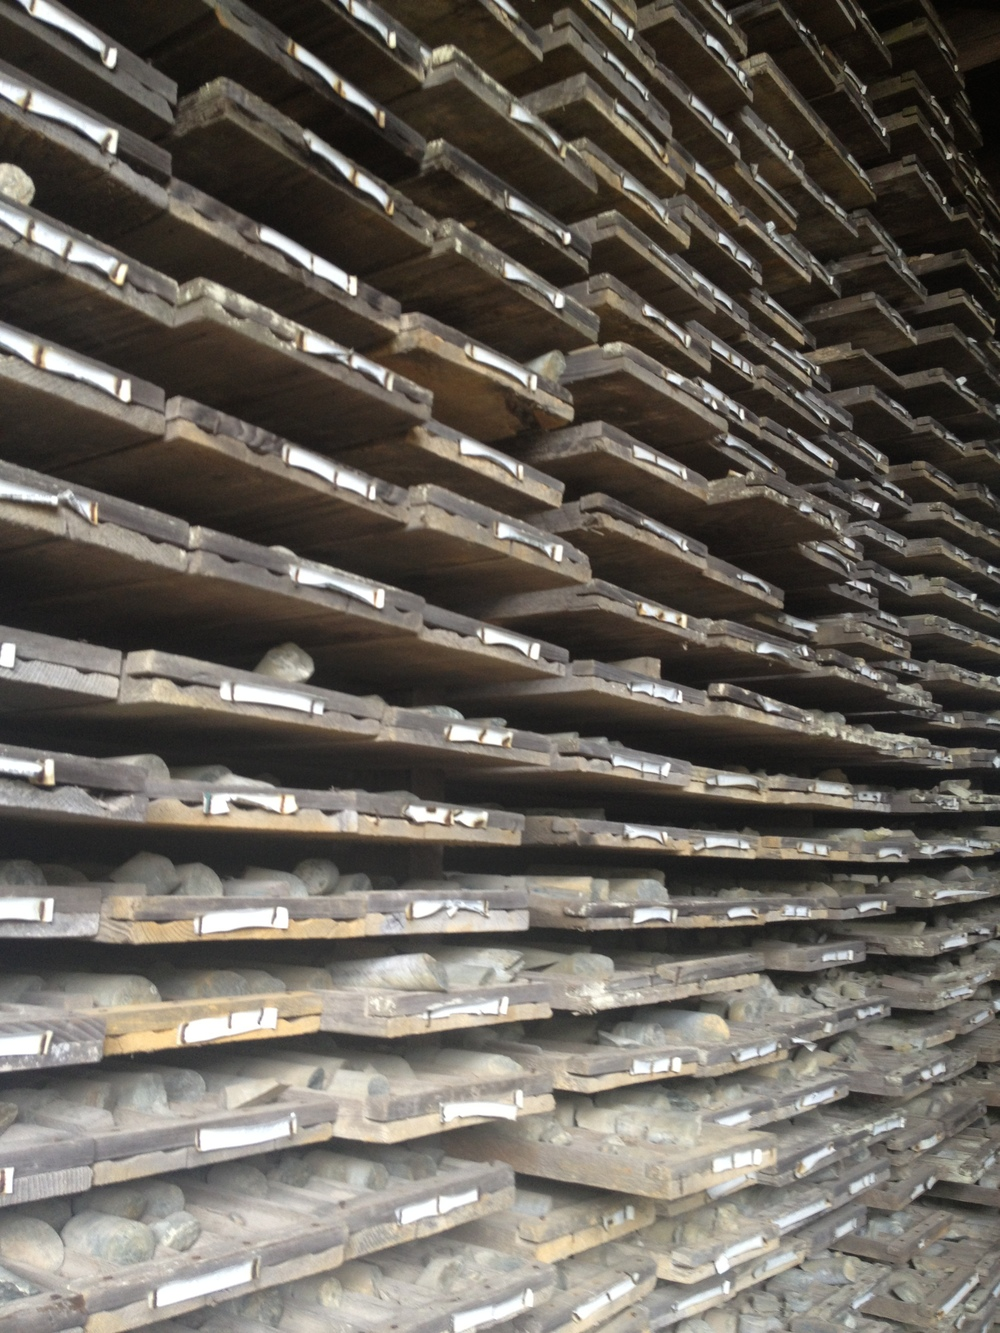 A shot of some of the cores in the core shed.